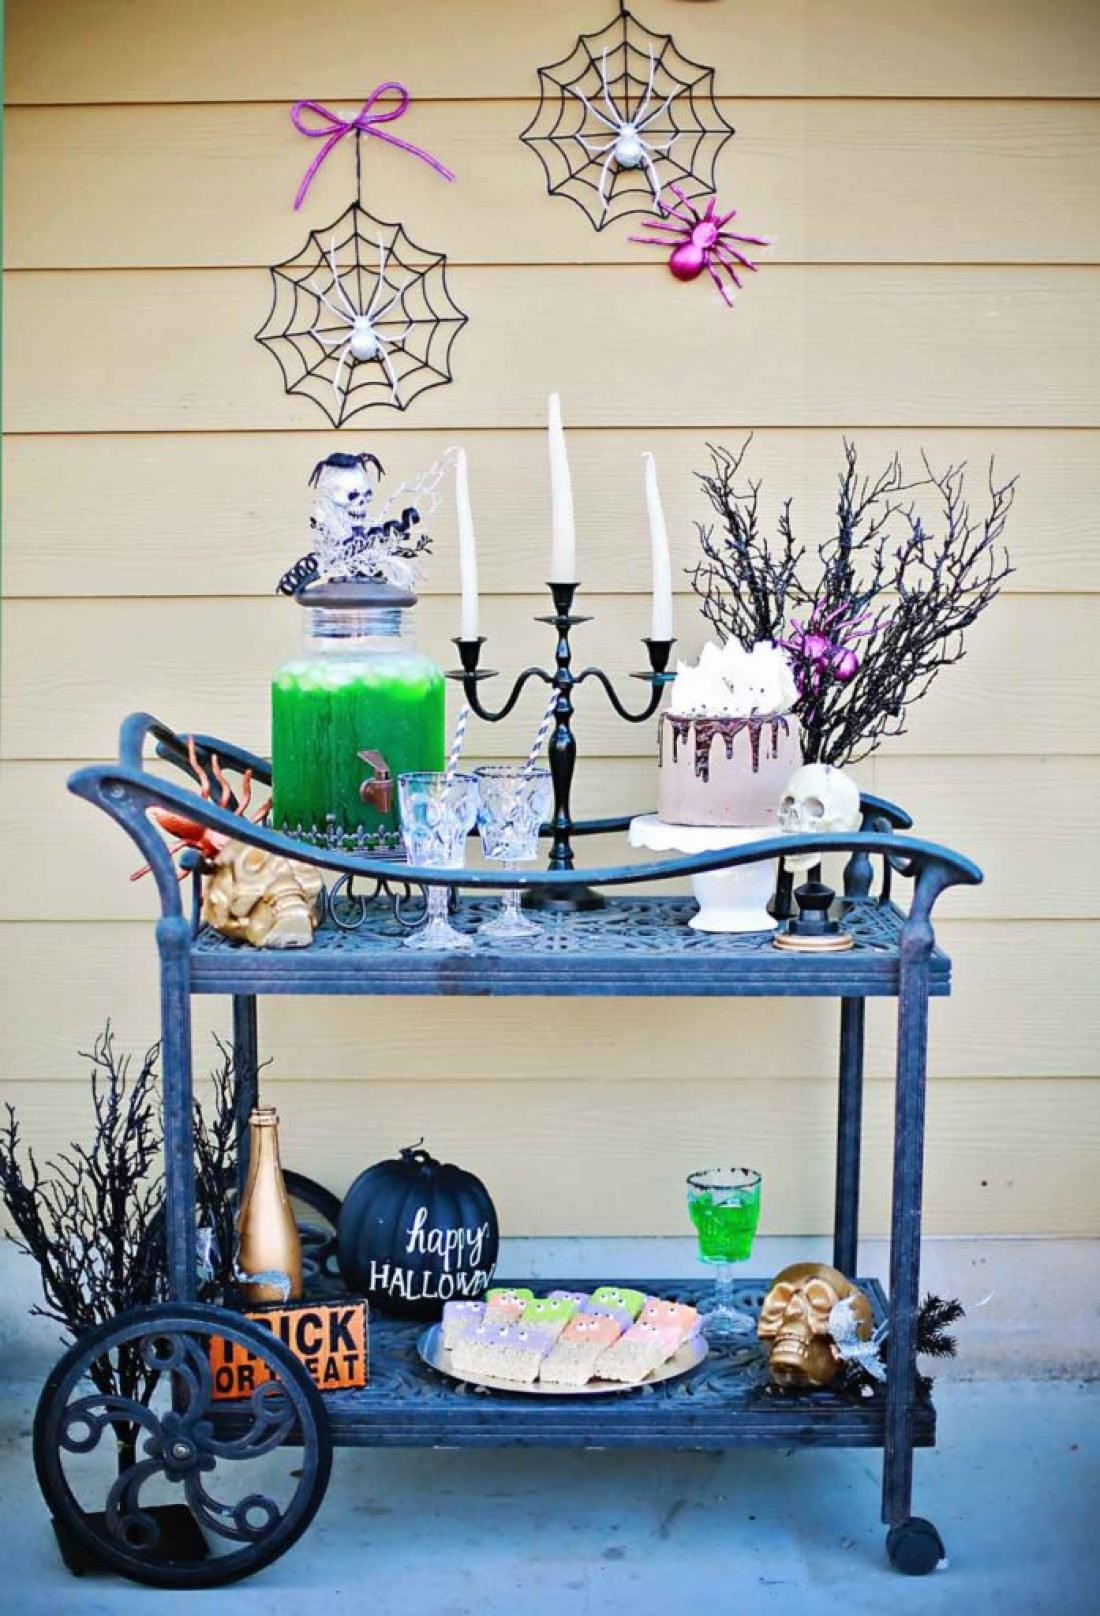 Awesome halloween food display by Flirting iwth Flavor